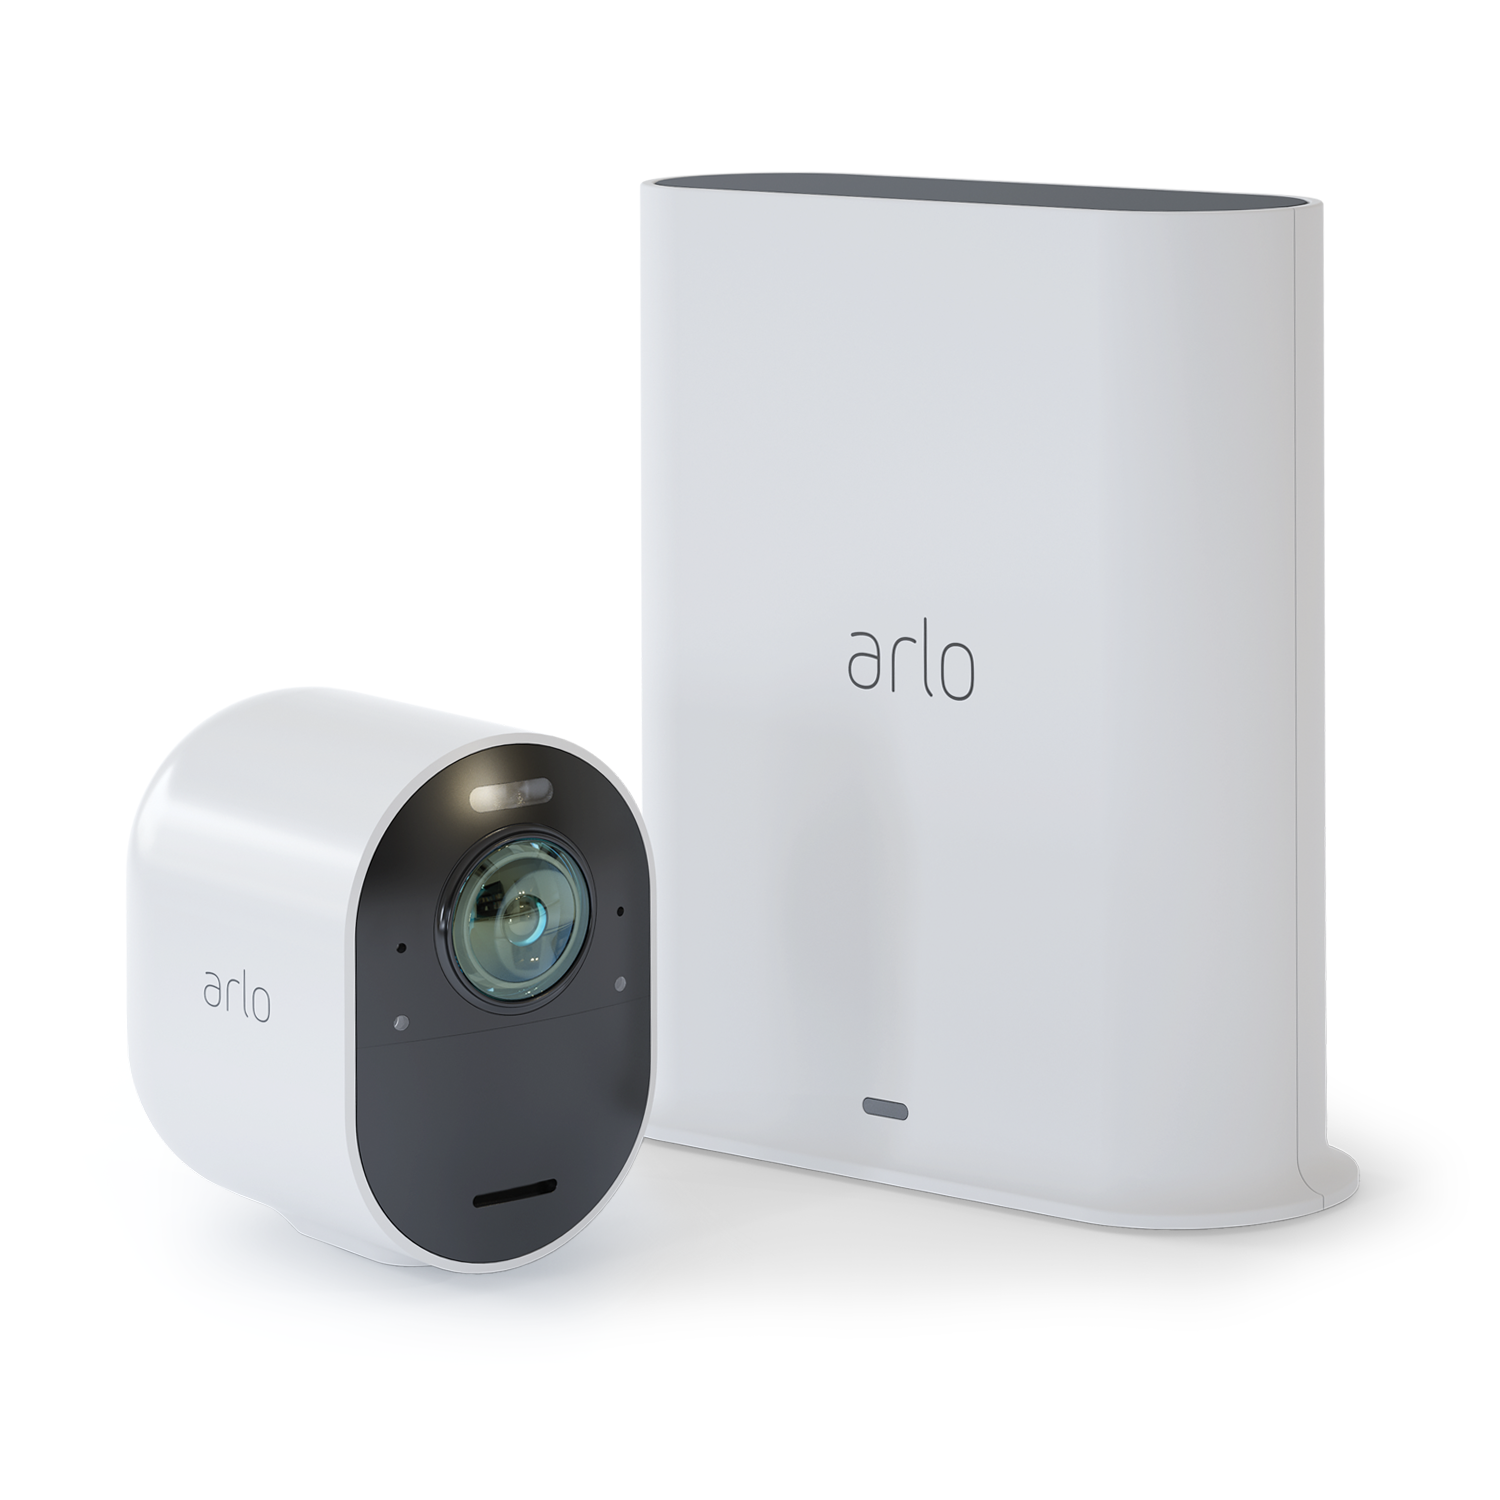 Update: Available later this month] Arlo announces the Arlo Ultra